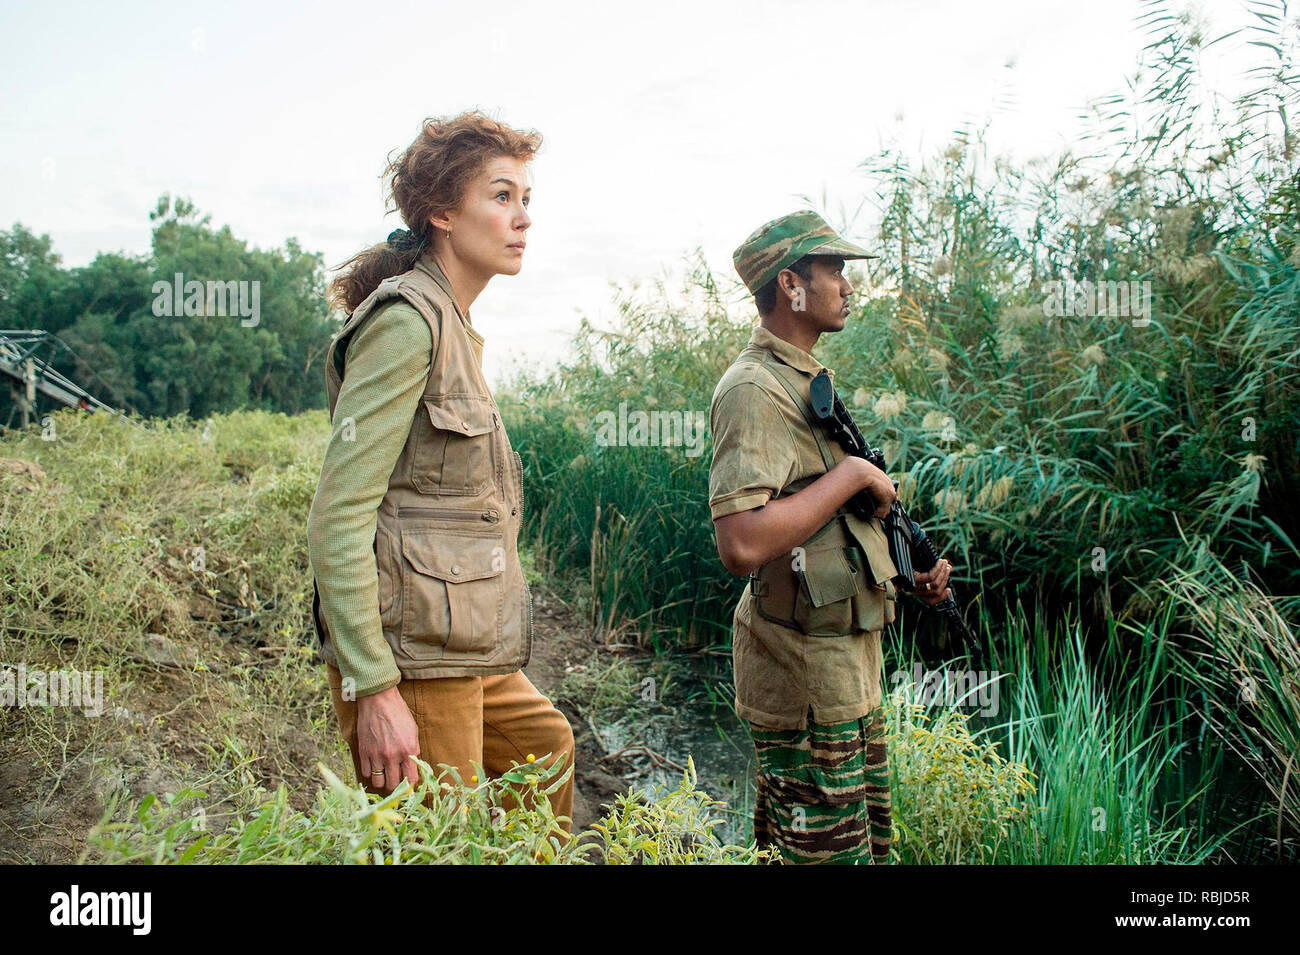 Prod DB © Acacia Filmed Entertainment - Thunder Road Pictures / DR A PRIVATE WAR de Matthew Heineman 2018 USA/GB Rosamund Pike. biopic; biography; femme journaliste; journalist; Marie Colvin; femme reporter;  based on the Vanity Fair article 'Marie Colvin's Private War' by Marie Brenner d'apres l'article de Marie Brenner - Stock Image